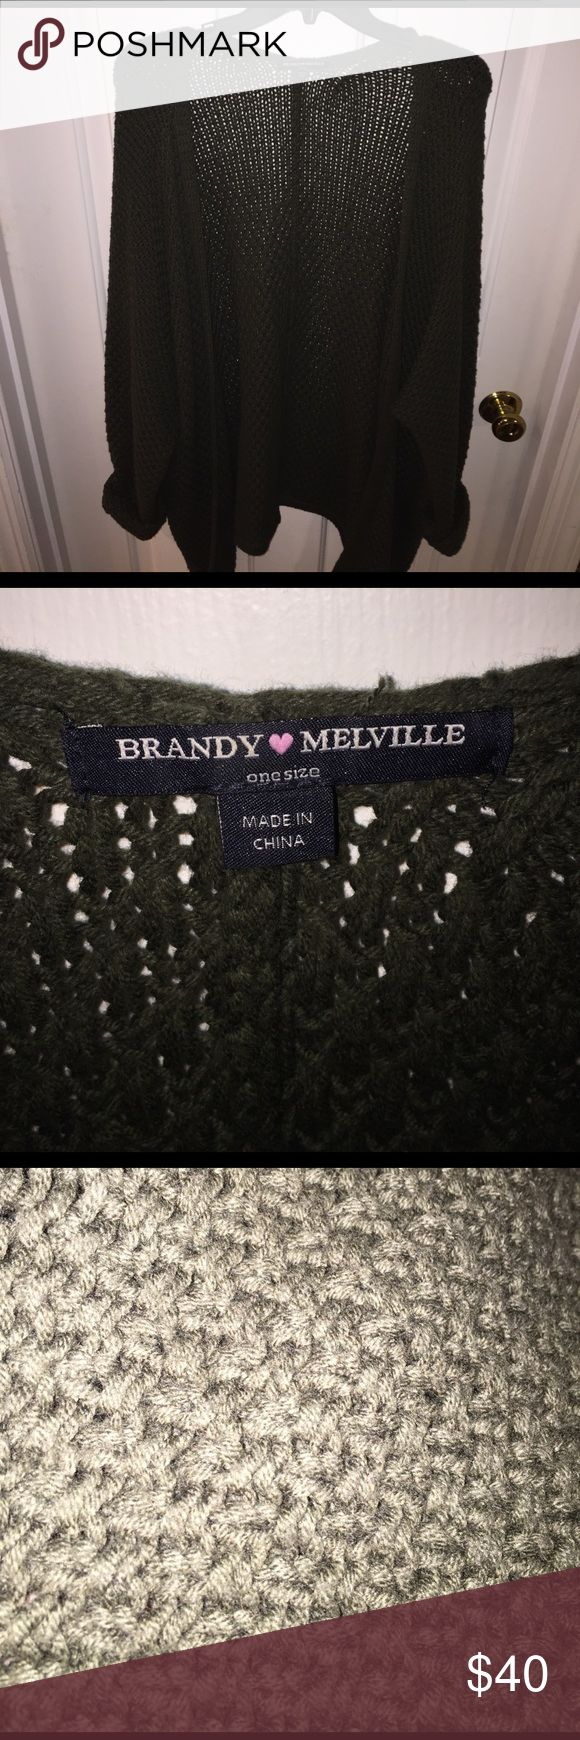 NWOT Brandy Melville cardigan. Olive green NEW WITHOUT TAGS. Worn only 2 times. Brandy Millville, one size cardigan. Beautiful knit pattern. Purchased from PacSun. Very thick. Brand new. Brandy Melville Sweaters Cardigans